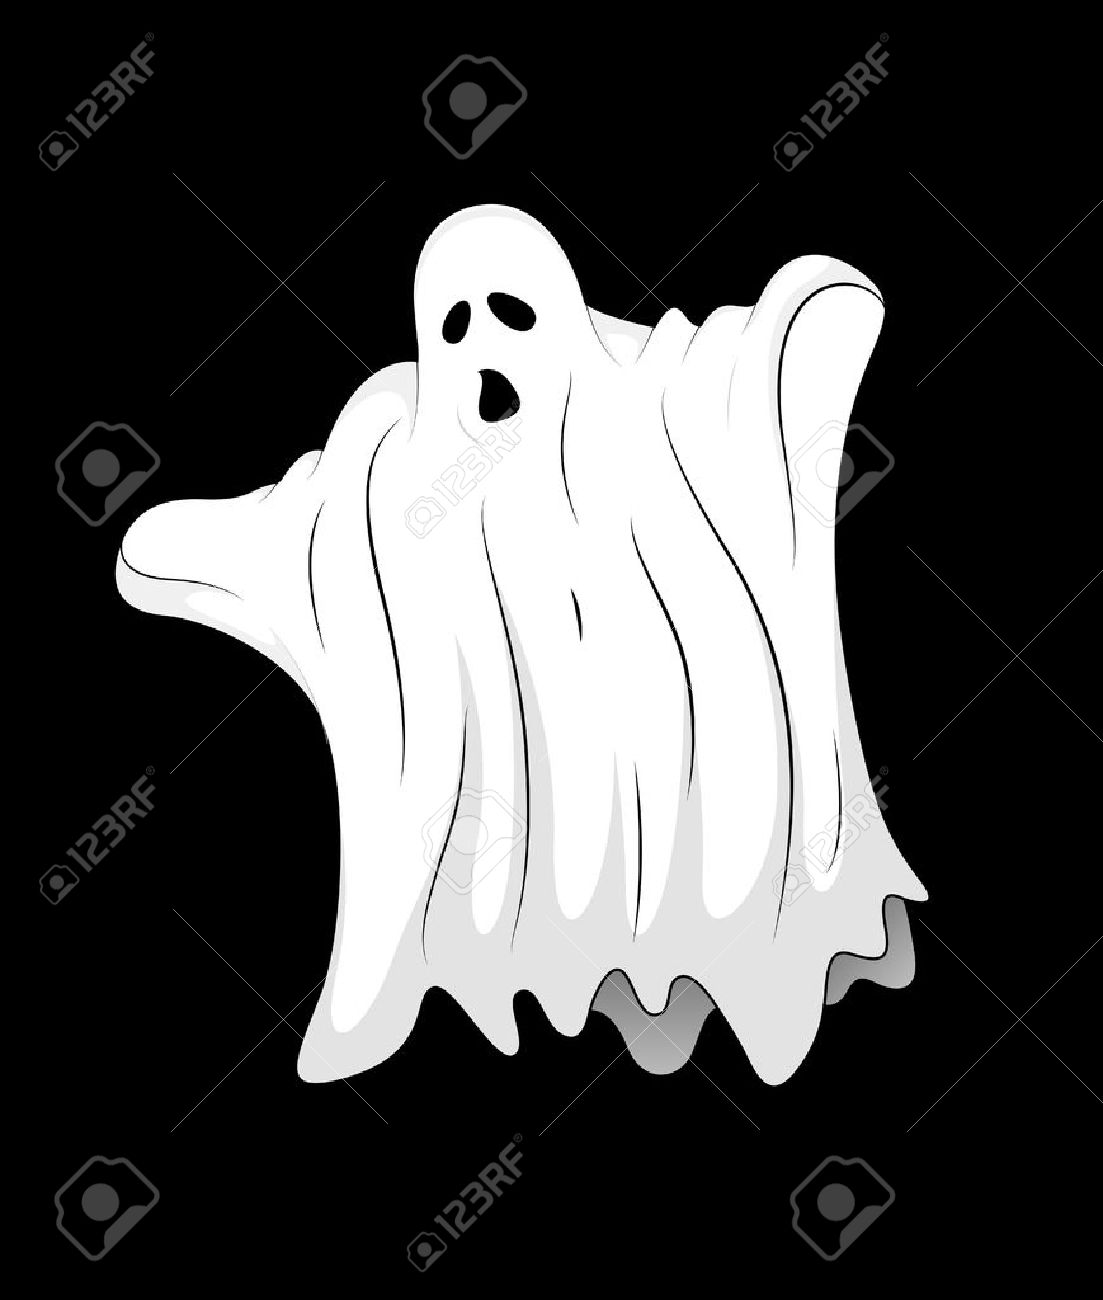 Scary Ghost Stock Vector - 13249642